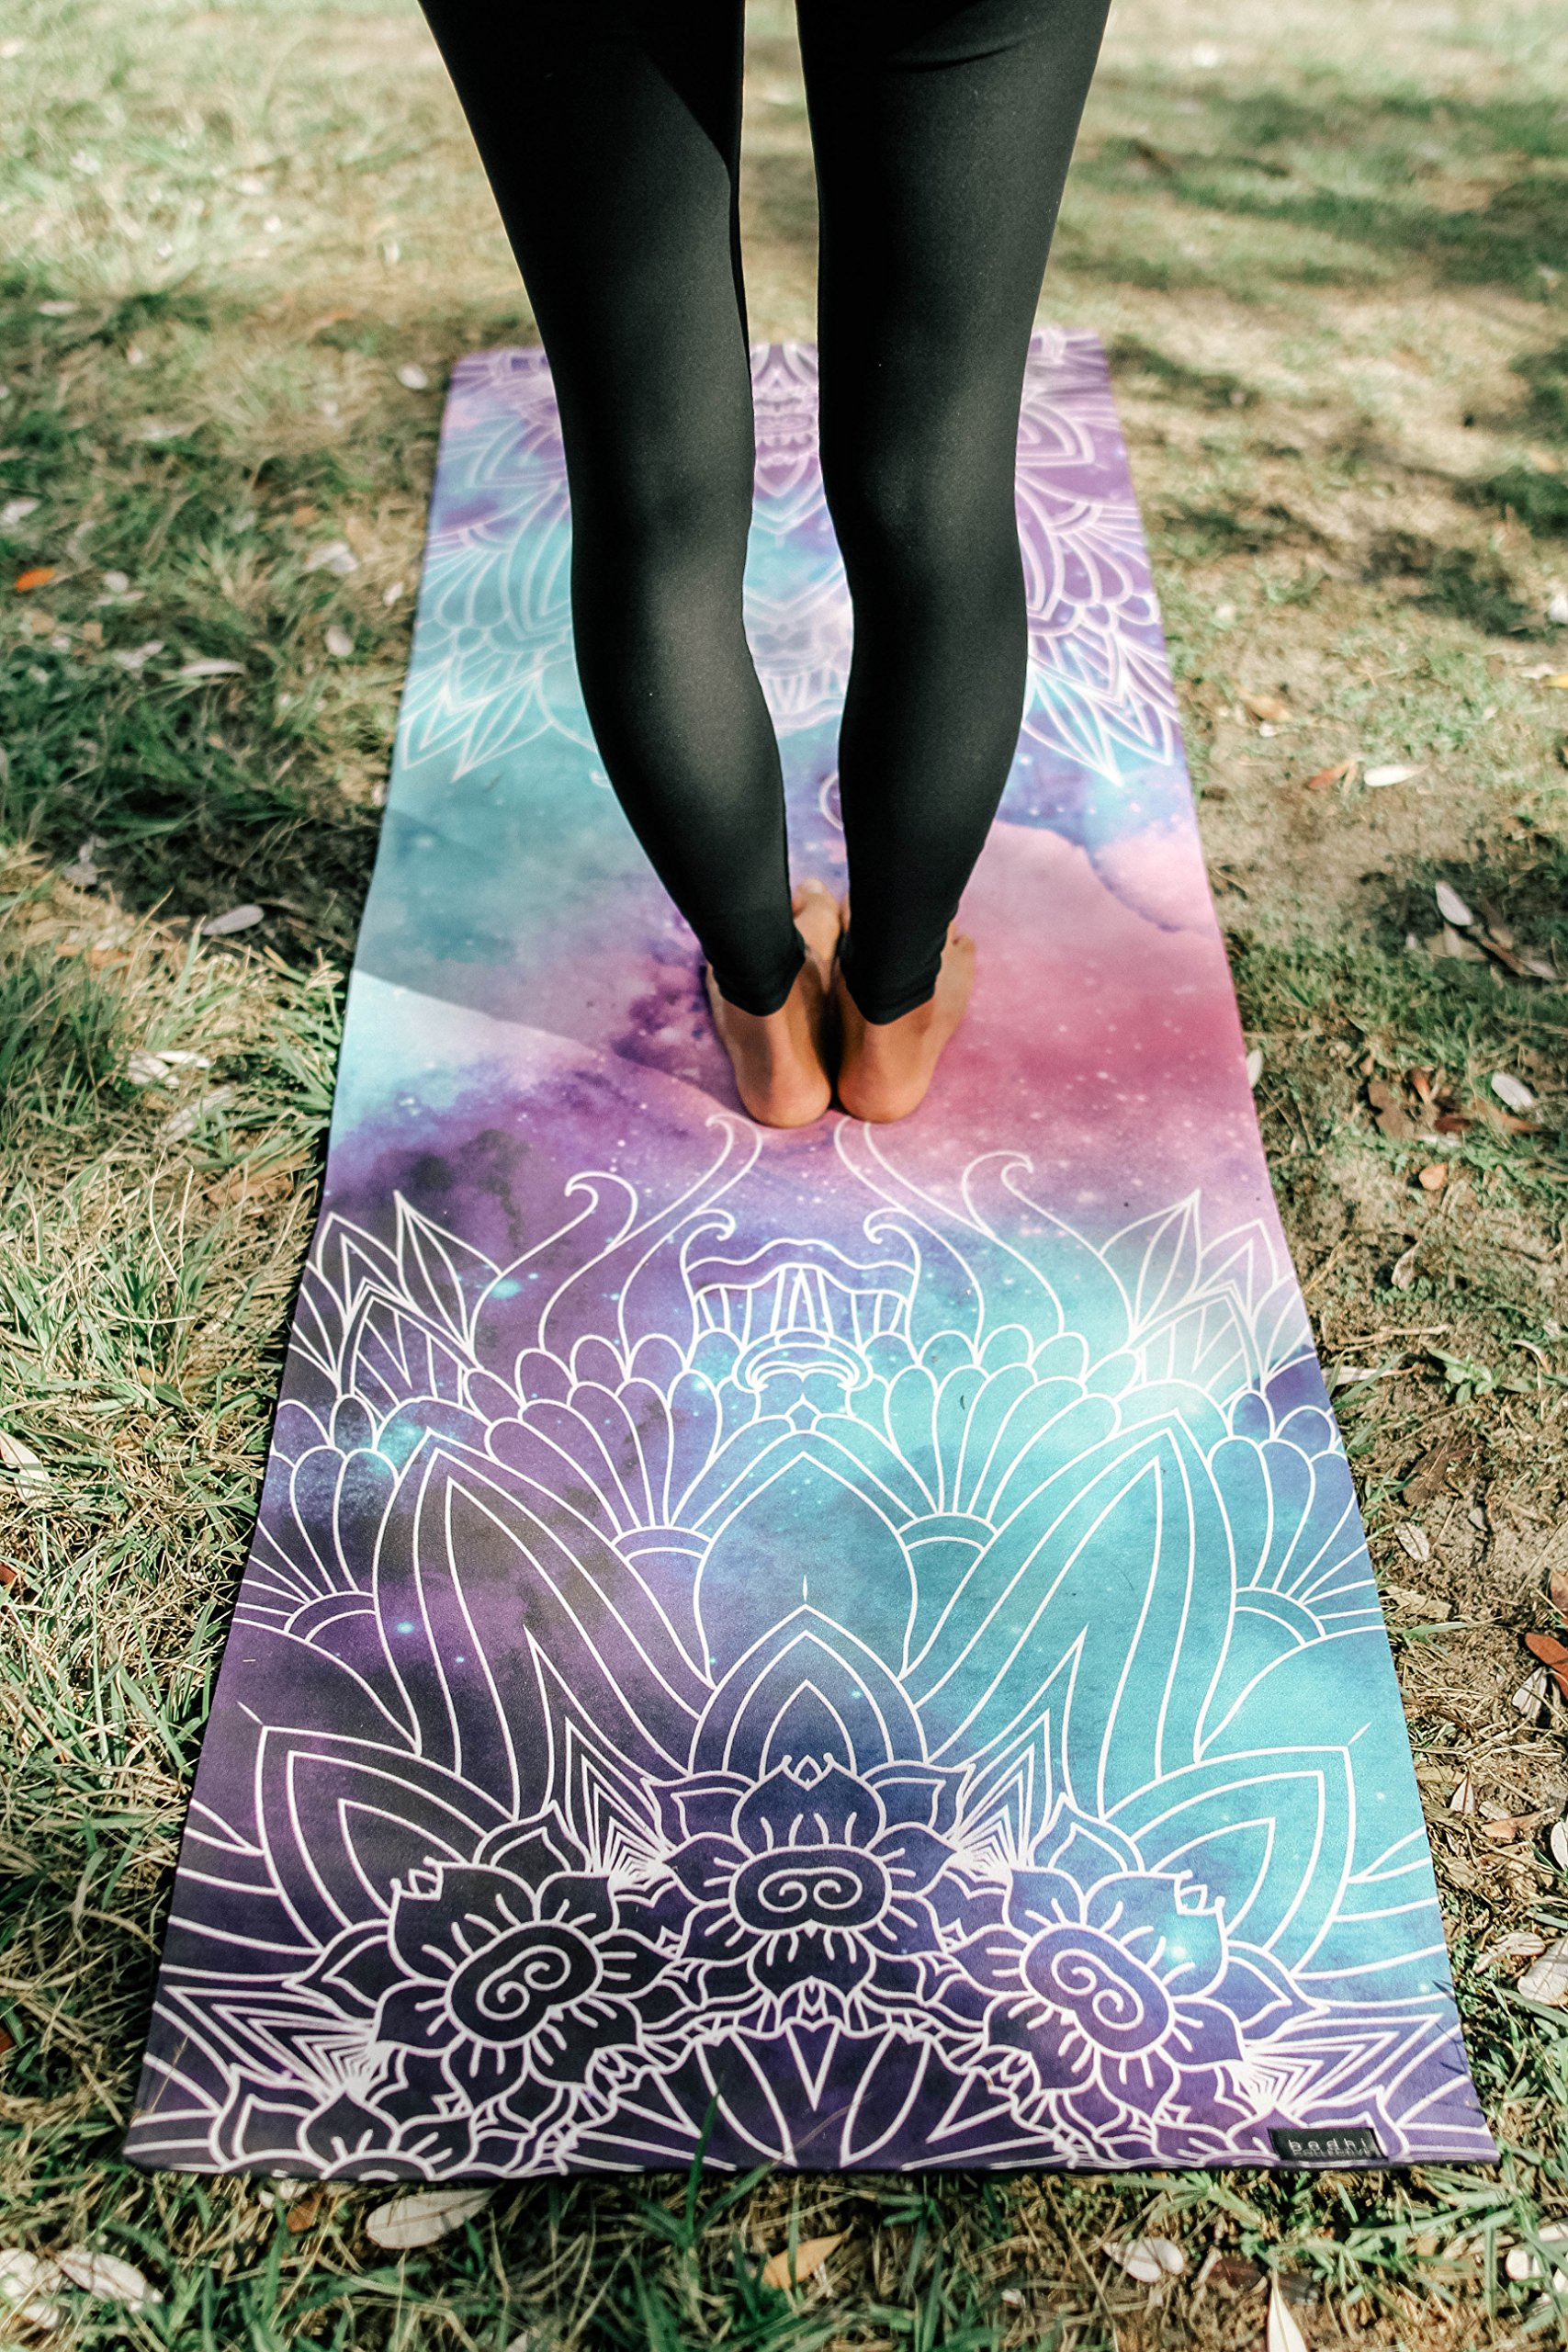 Bodhi Collective MERAKI Luxe Printed Yoga Mat   Premium Eco Friendly Natural Rubber & Soft Suede by Bodhi Collective (Image #4)